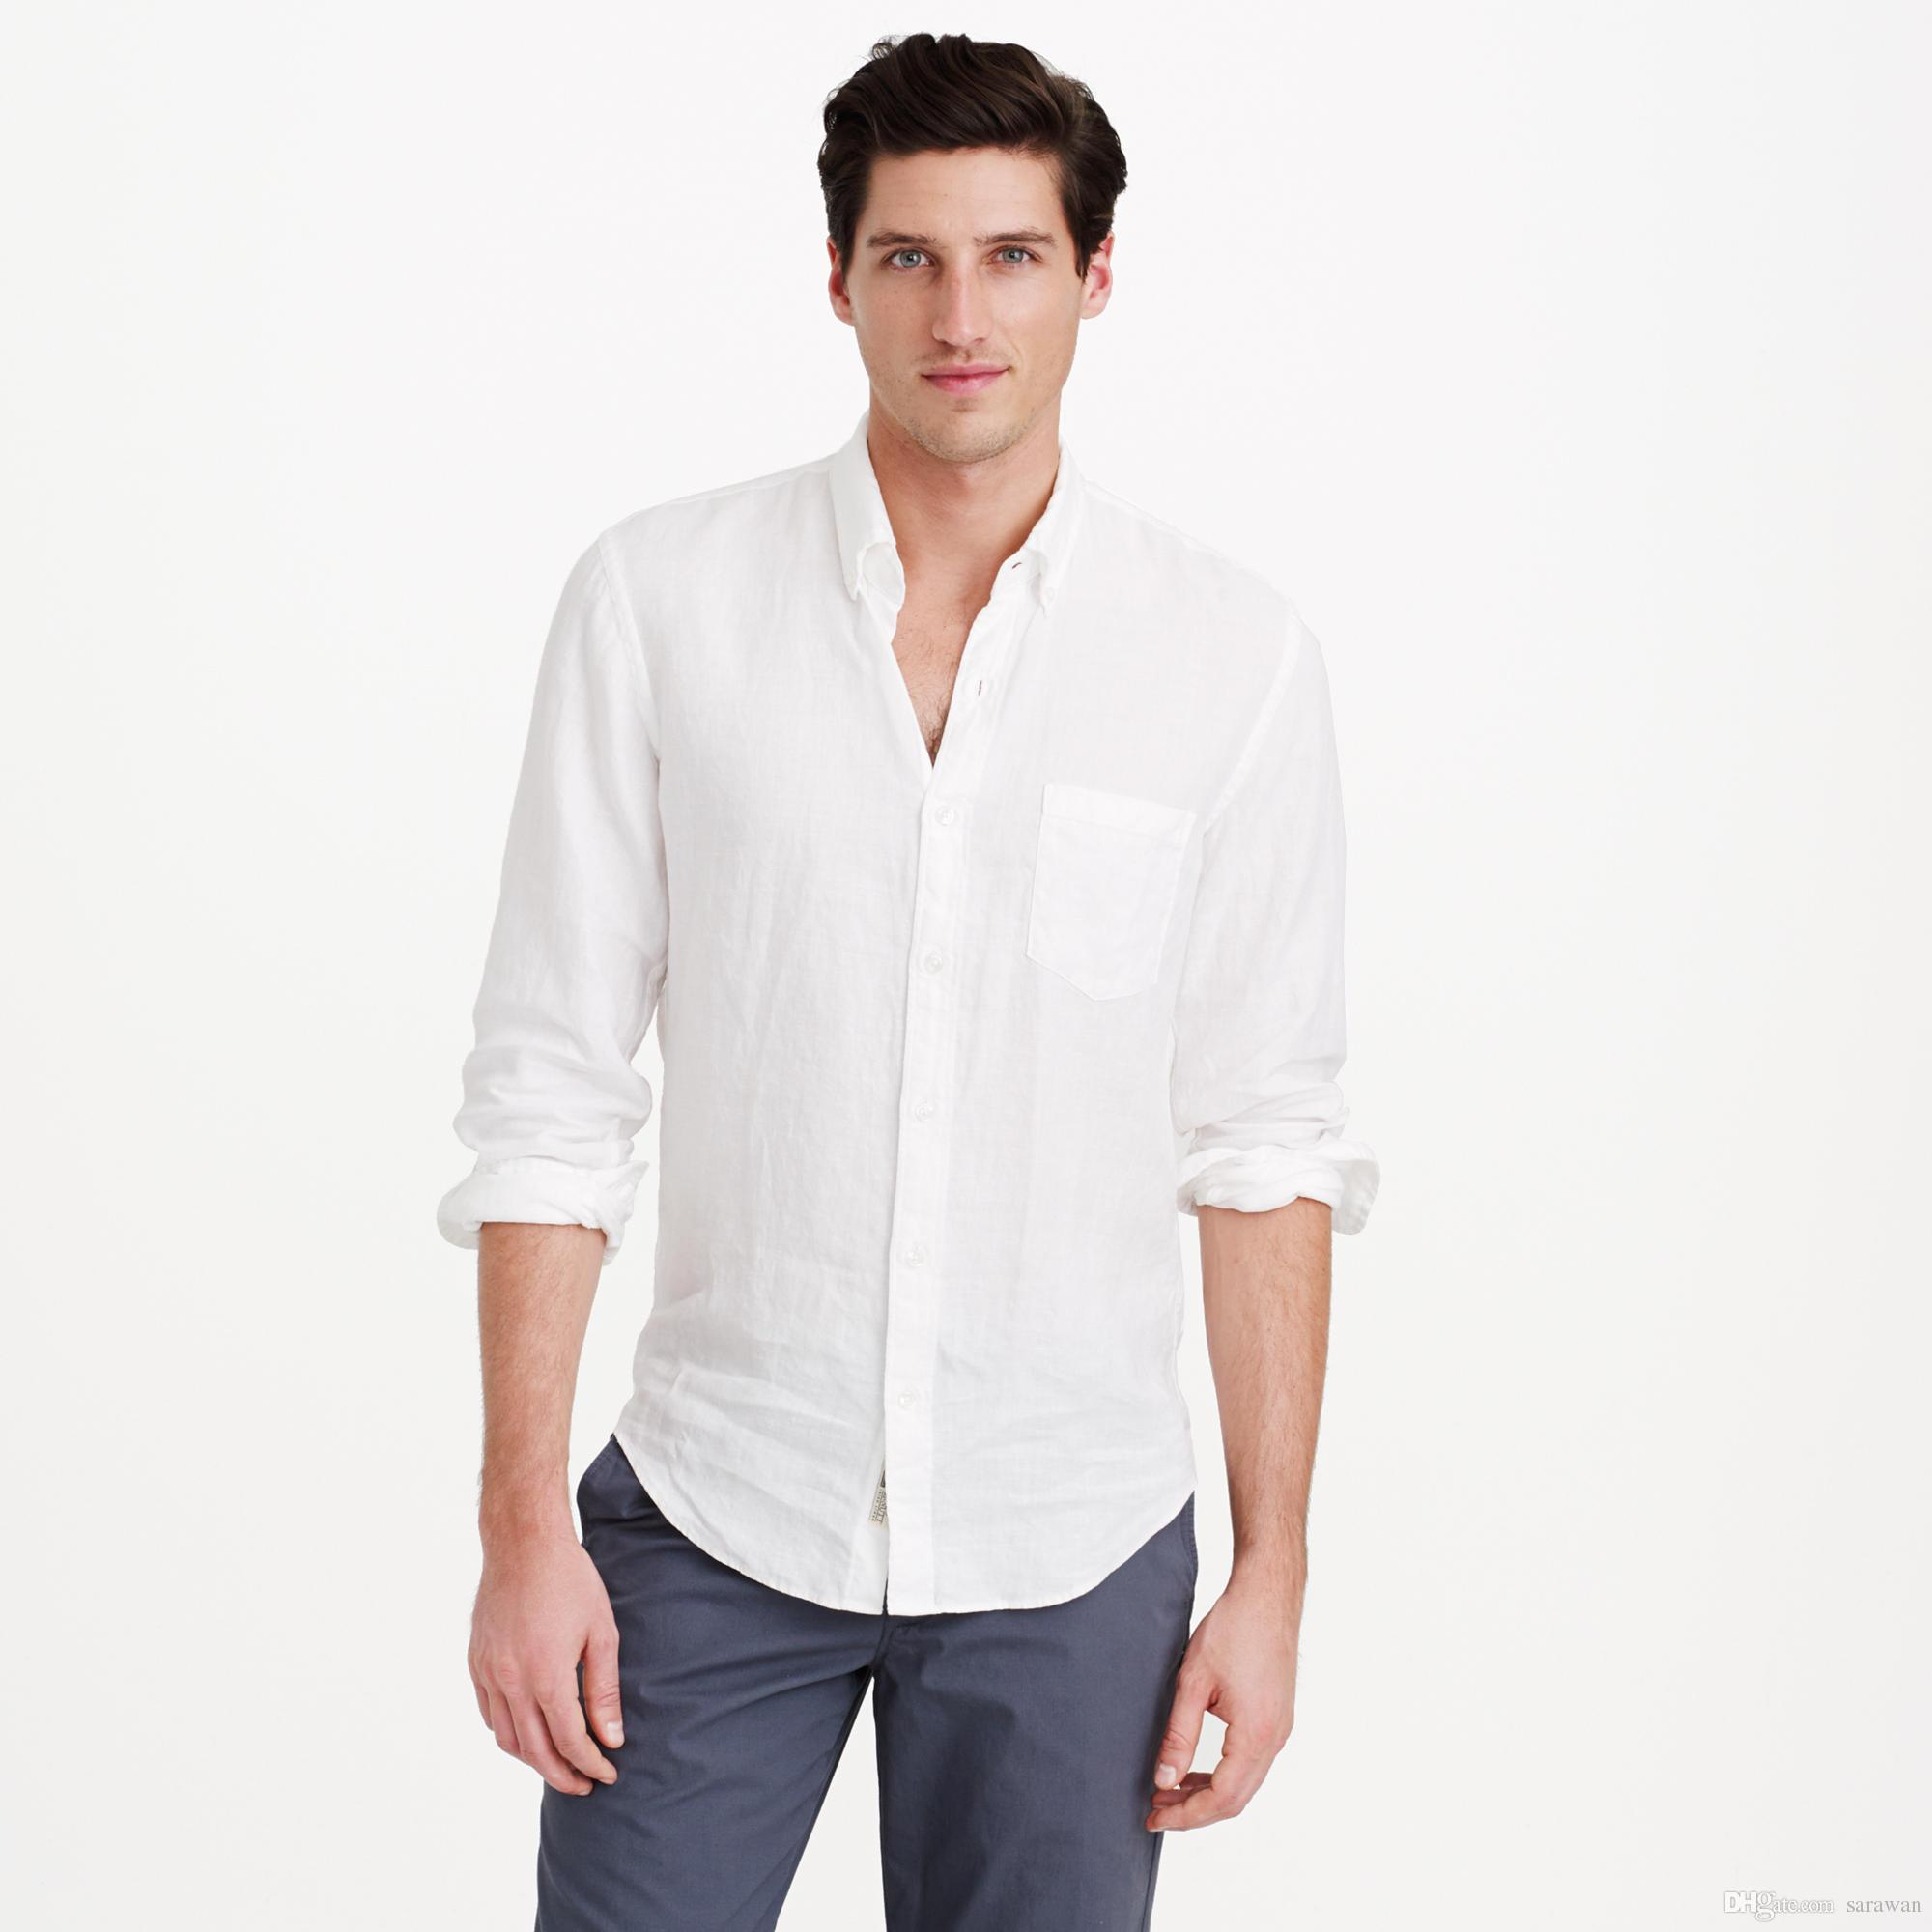 Shop mens shirts on gusajigadexe.cf Free shipping and free returns on eligible items.